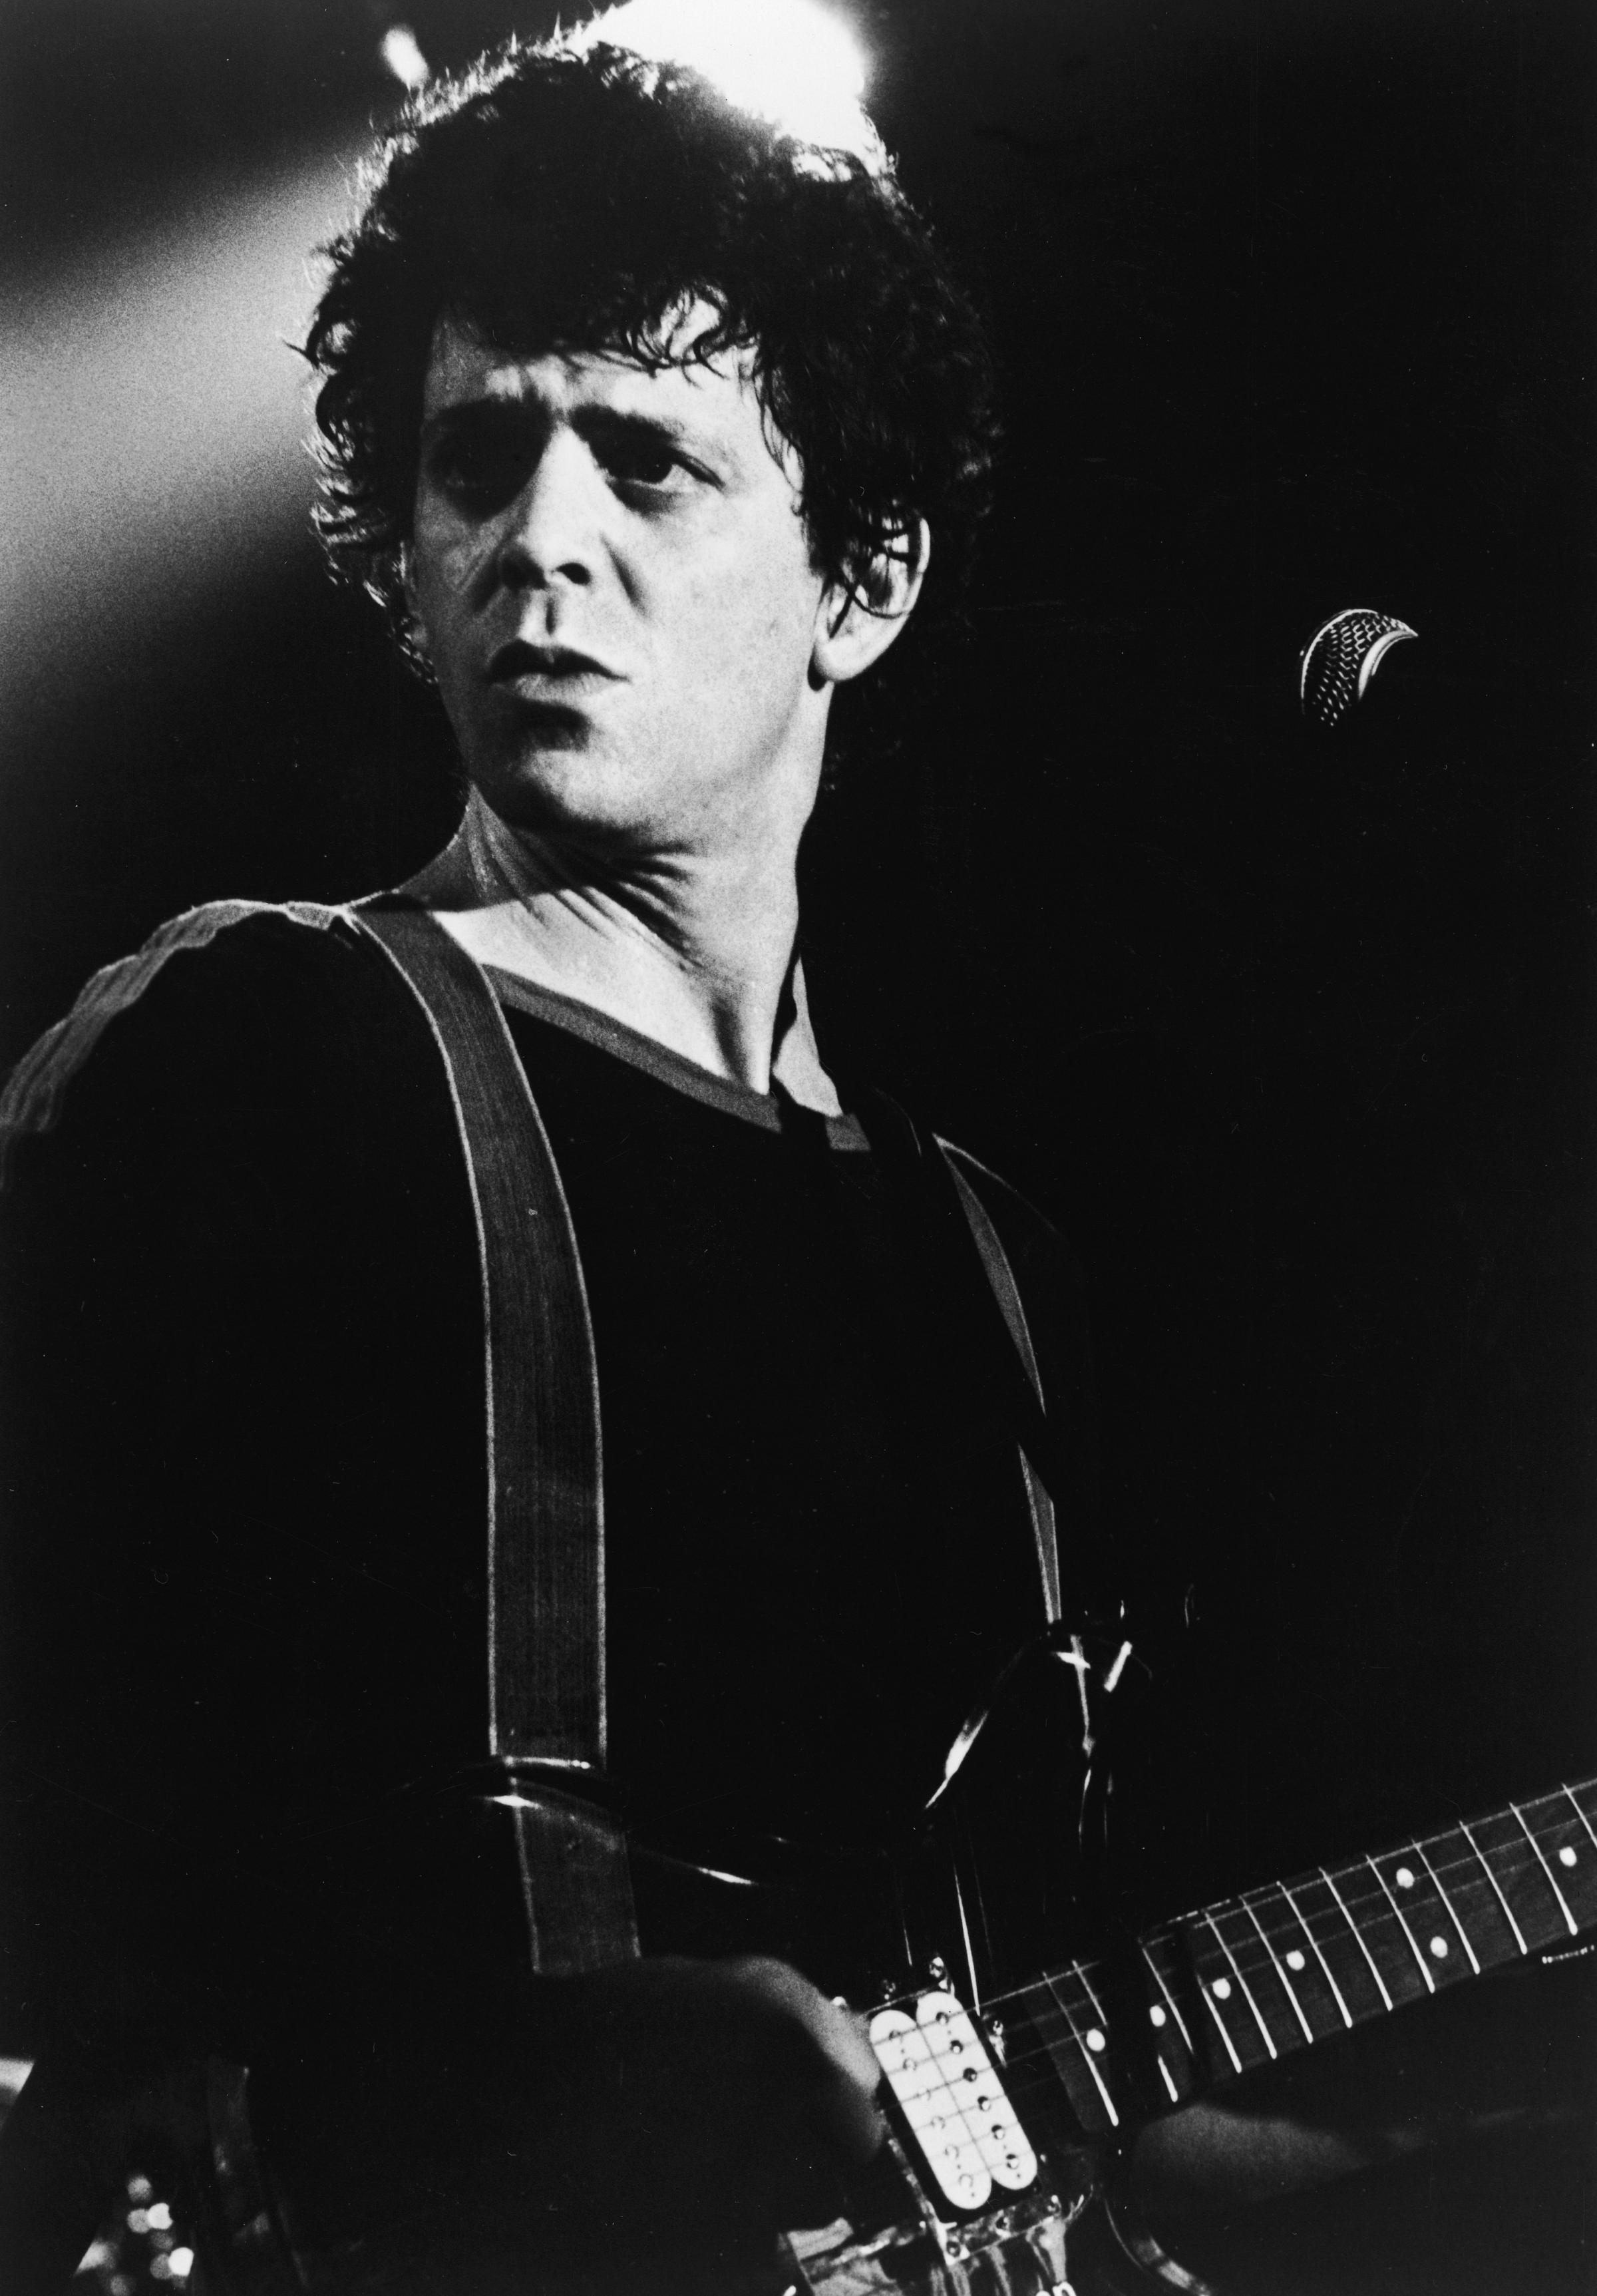 Lou Reed, Leader Of The Velvet Underground, Has Died At 71